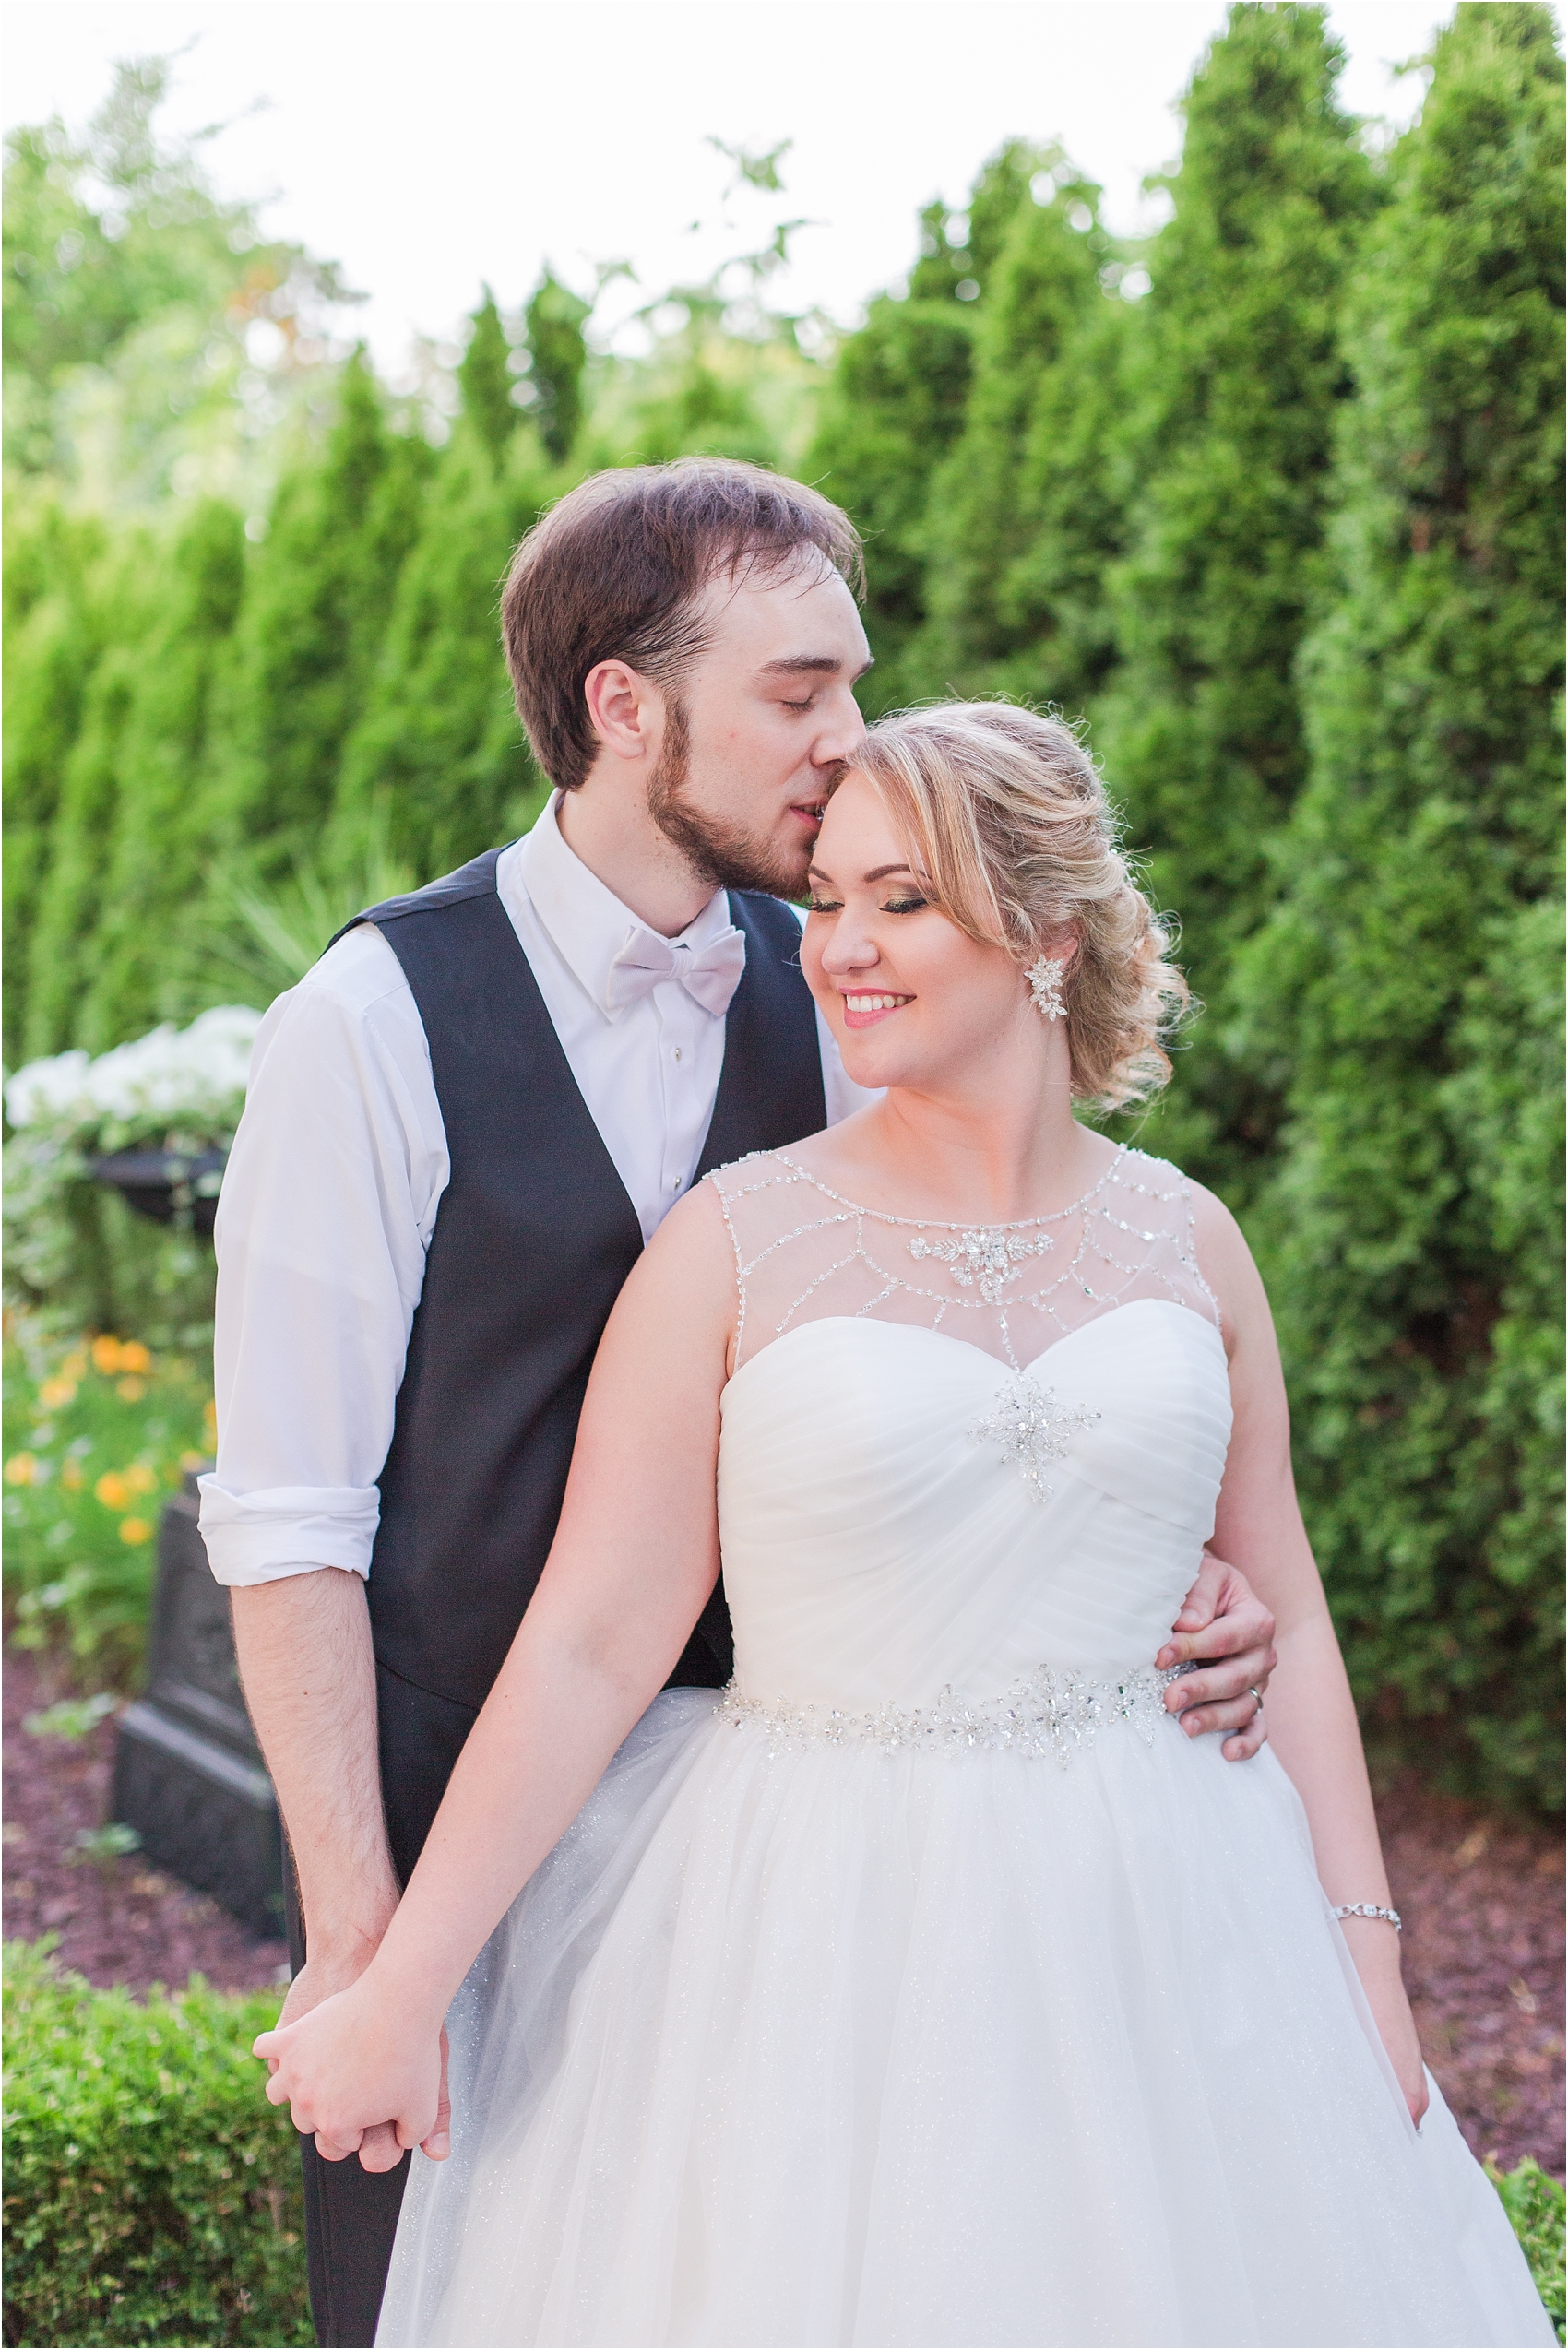 lord-of-the-rings-inspired-wedding-photos-at-crystal-gardens-in-howell-mi-by-courtney-carolyn-photography_0099.jpg